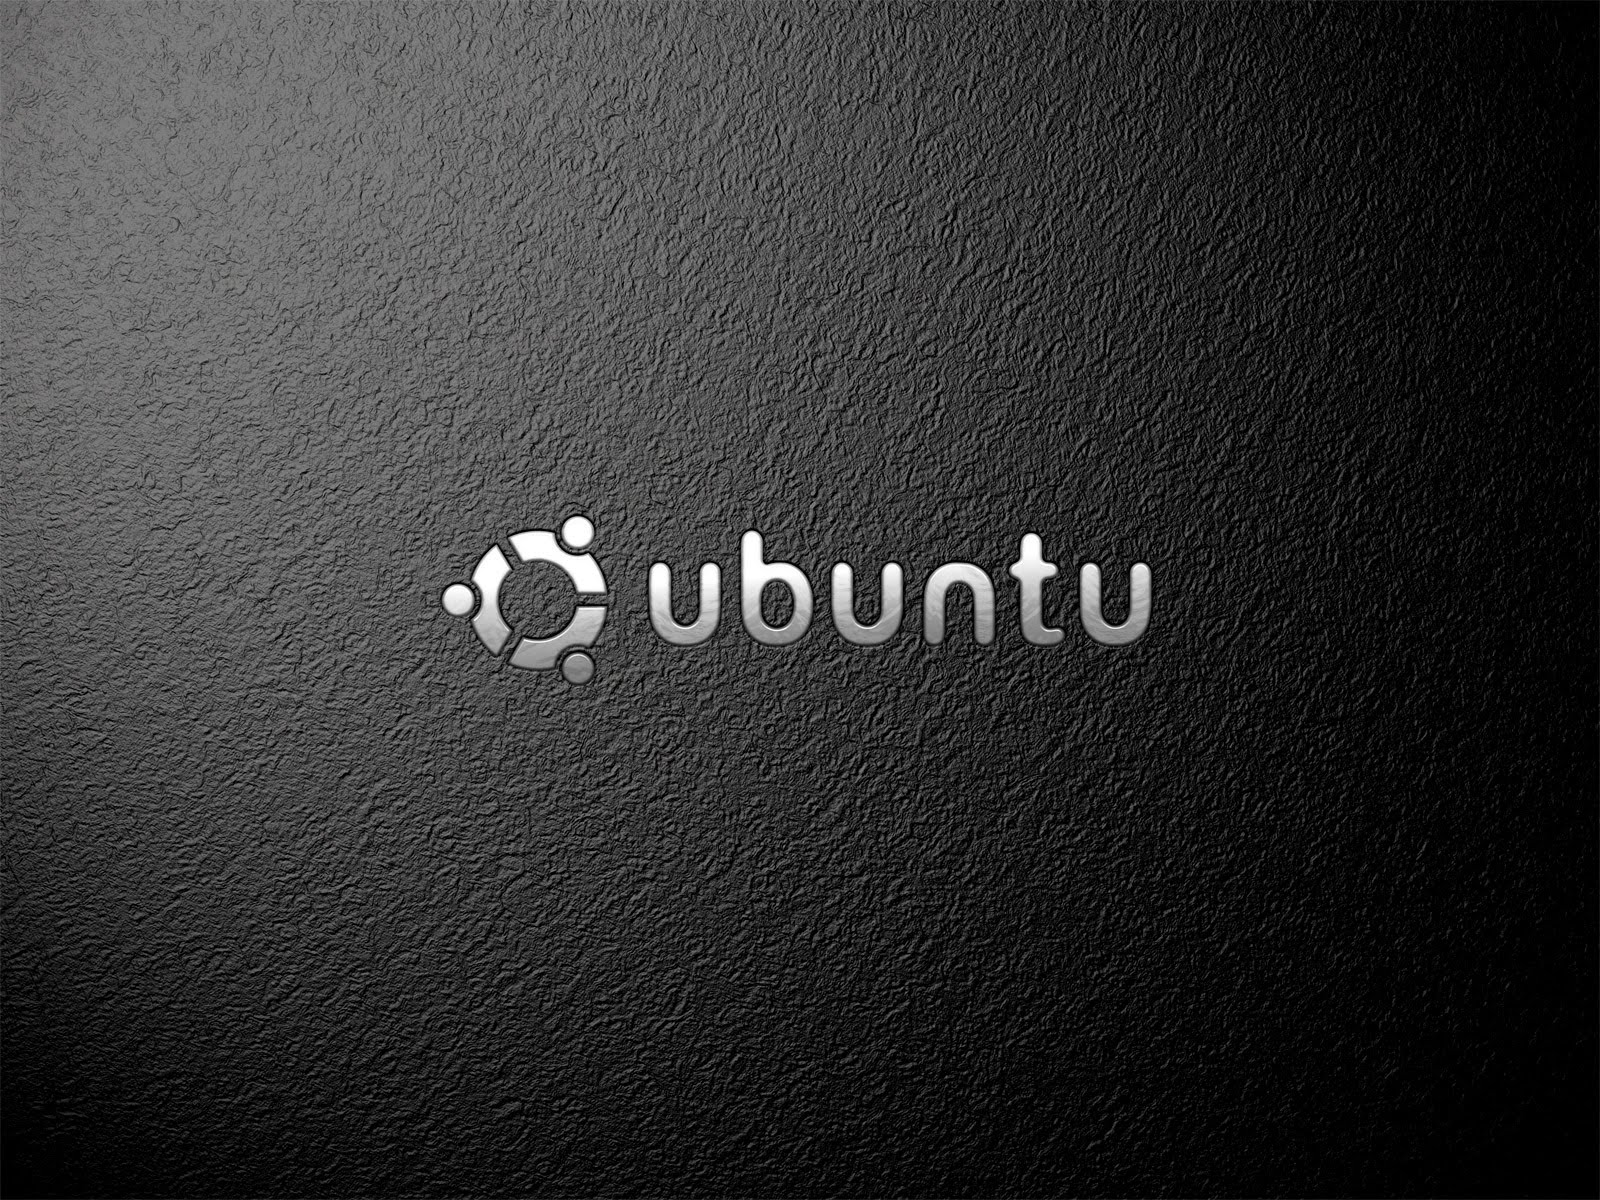 Ubuntu Wallpapers Hd 113135 1600x1200